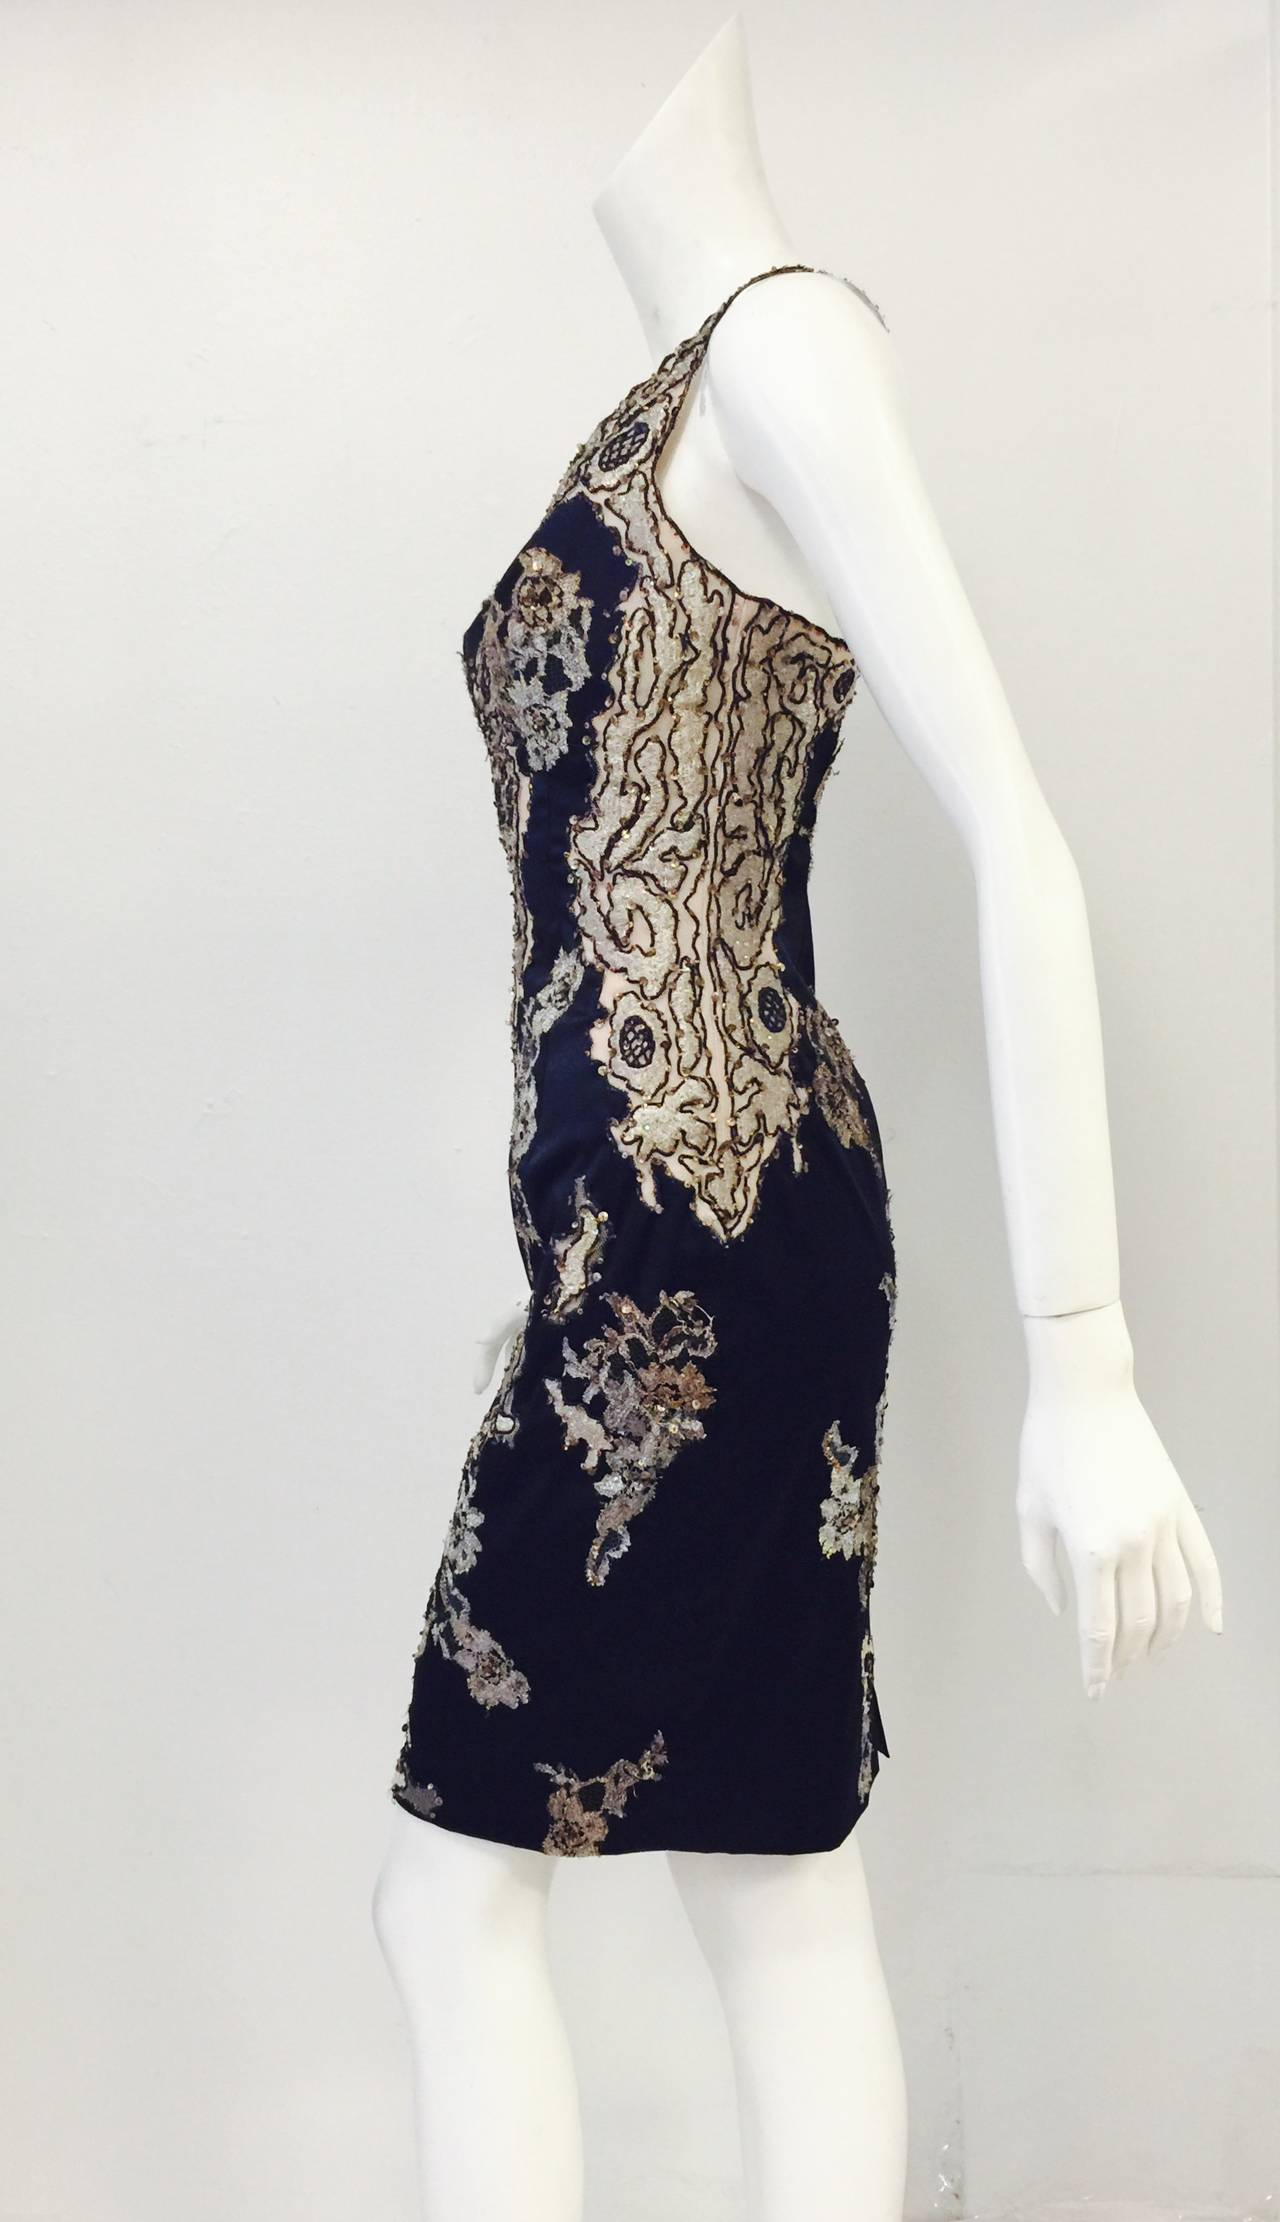 Brand New Mandalay Beaded Cocktail Dress in Midnight Blue will make any Cocktail Hour Special!  Crafted from signature luxurious stretch fabric, dress features v-neckline, spaghetti straps, and above-the-knee length.  Exquisite applique technique